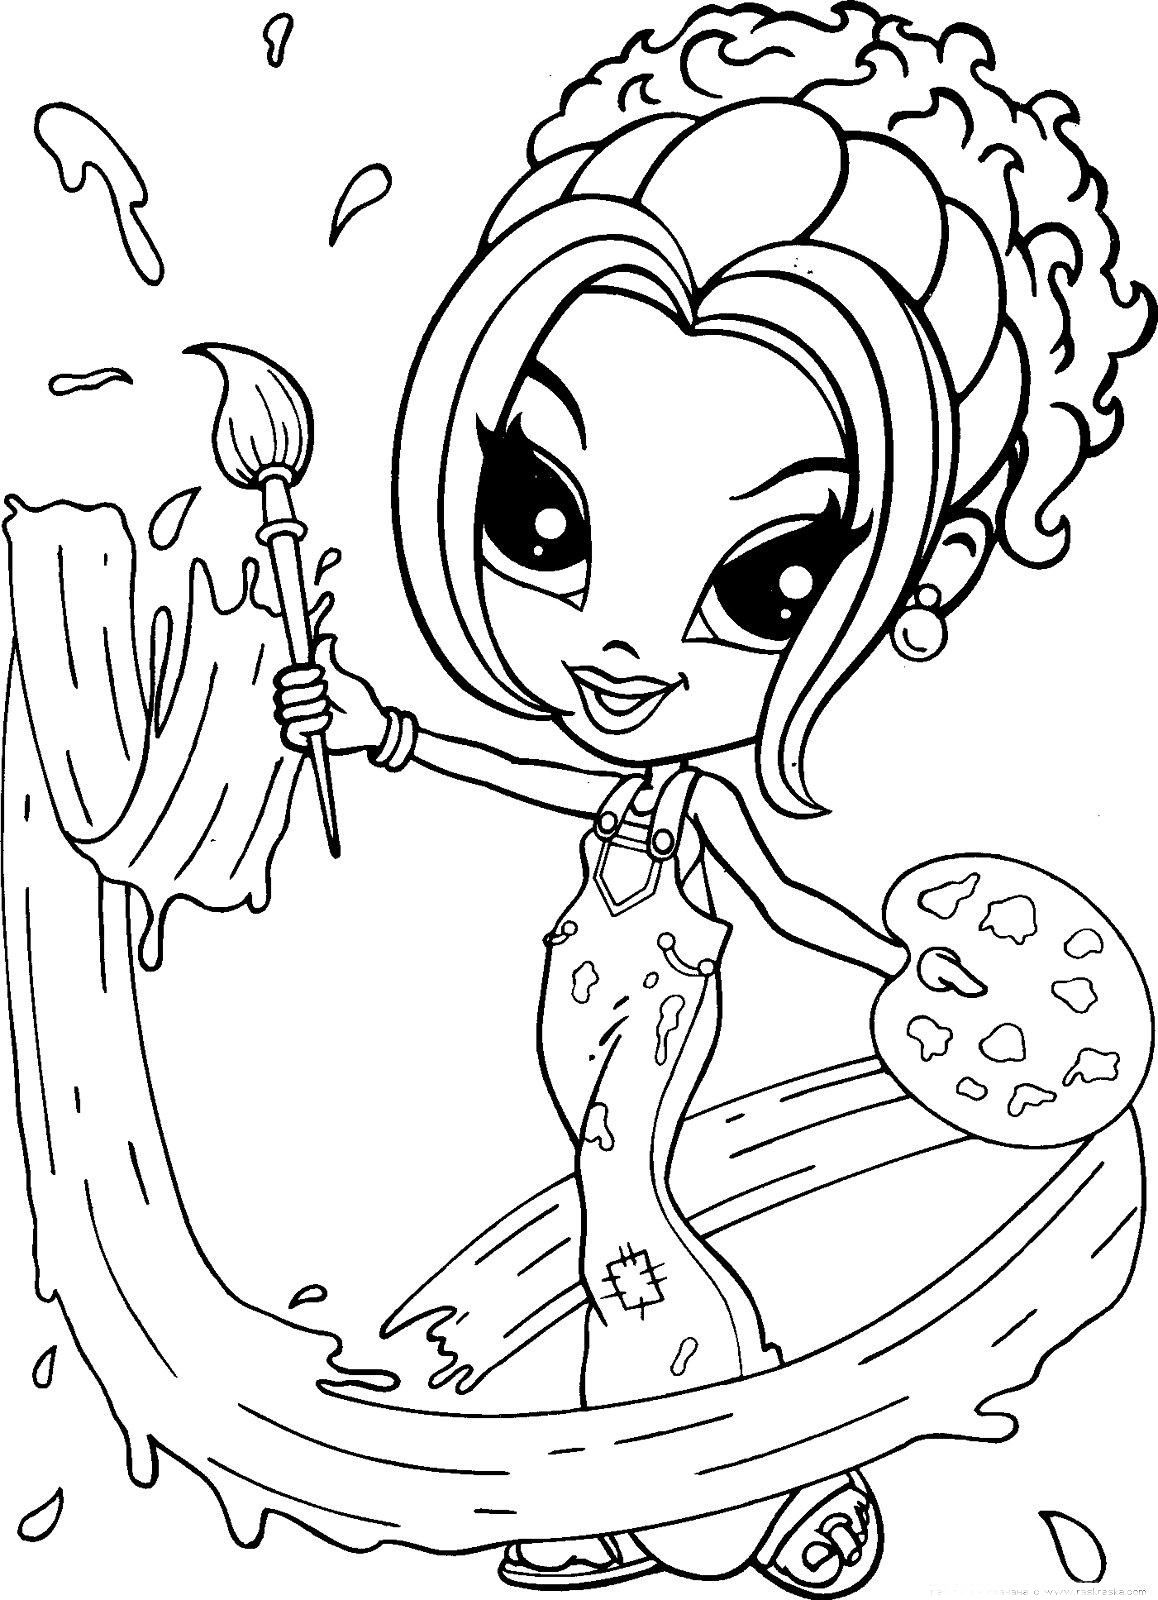 lisa frank coloring pages 2. Lisa frank valentine bear colouring pages page 2 coloring to download and print for free